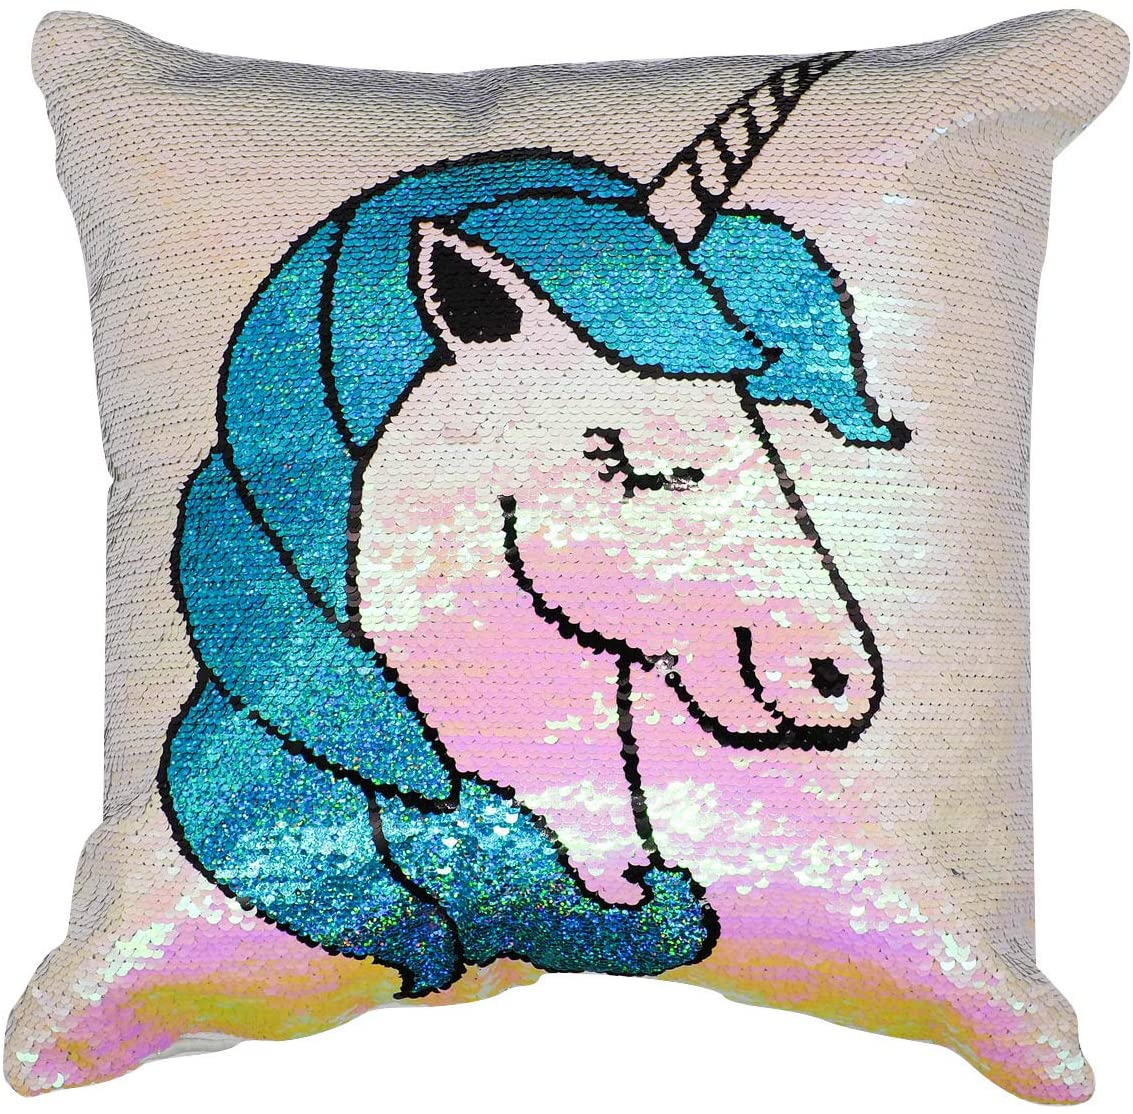 GiftKing Unicorns Pillow Case, Reversible Sequin Unicorn Cushion Cover - Pillowcase only 16